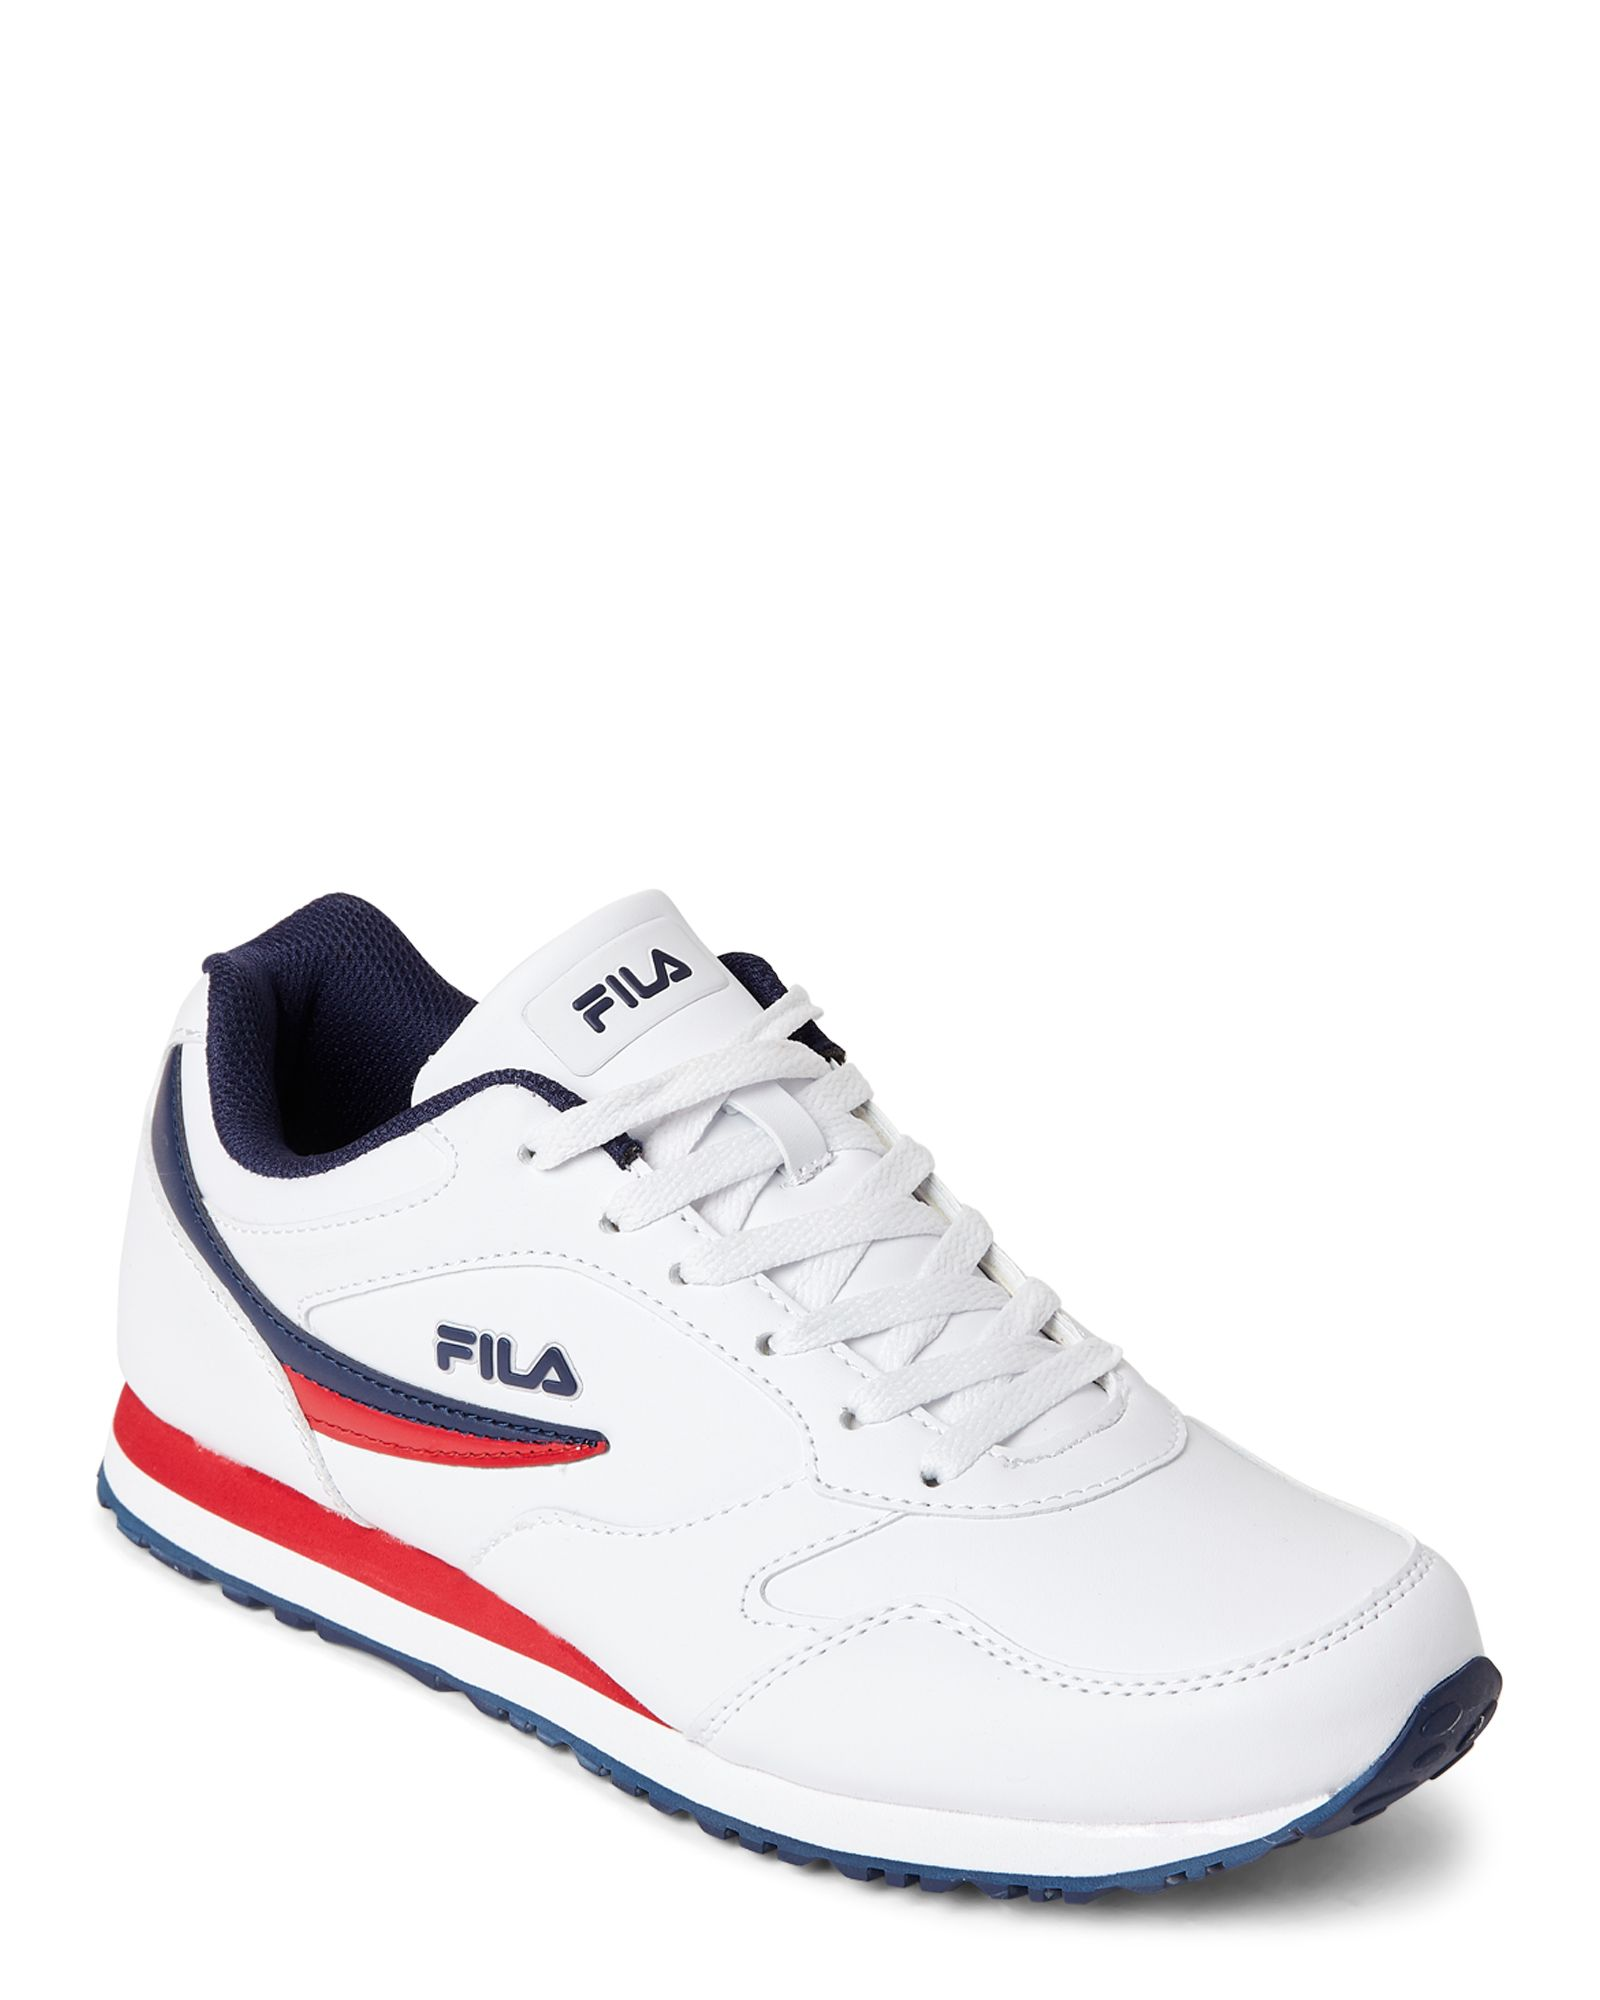 Classico 2019apparel In Whiteamp; Navy 18 Jogger Sneakers ybf7Y6g